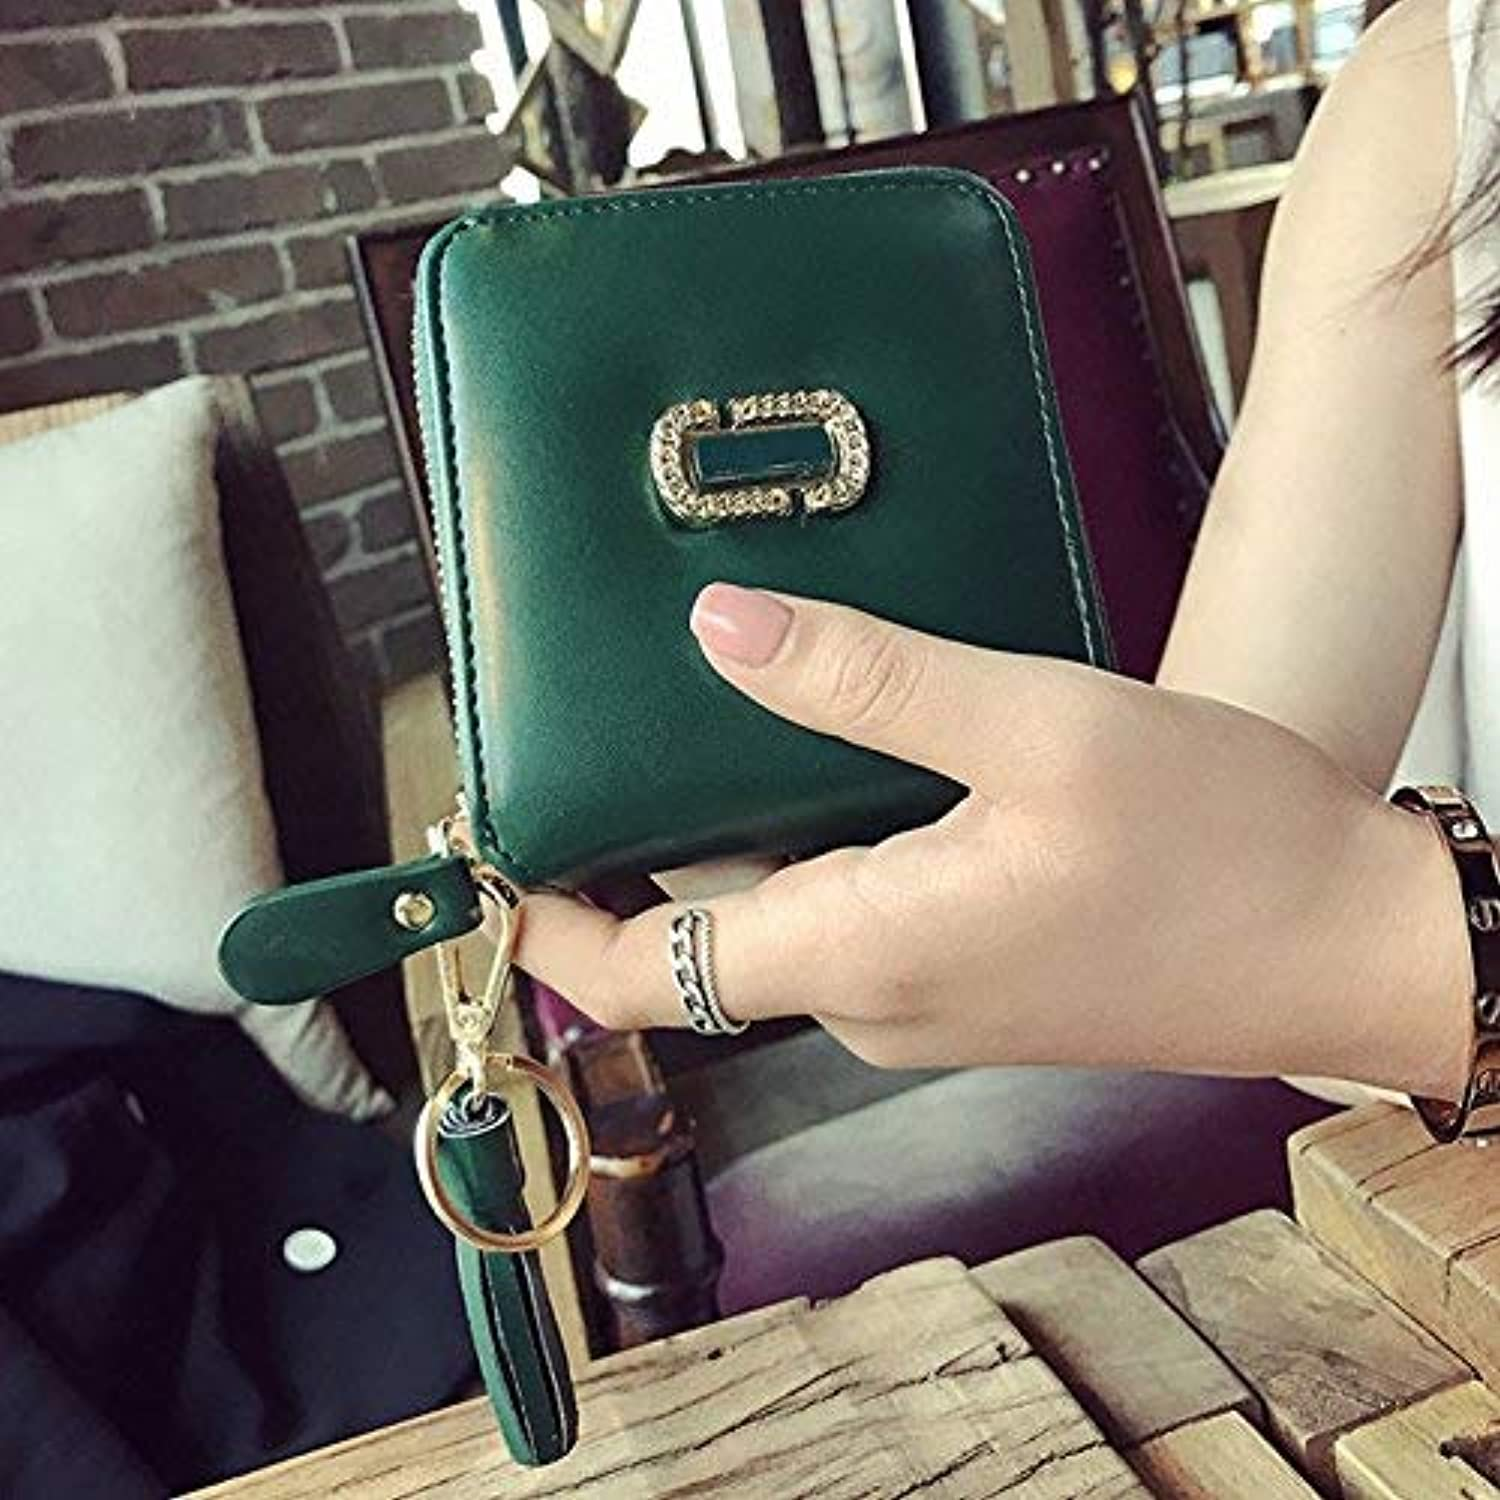 Girls Purse in The Summer of Package Simple Square, Short, Small Wallet Zipped WalletSu Mini Change Package (color   The Green)